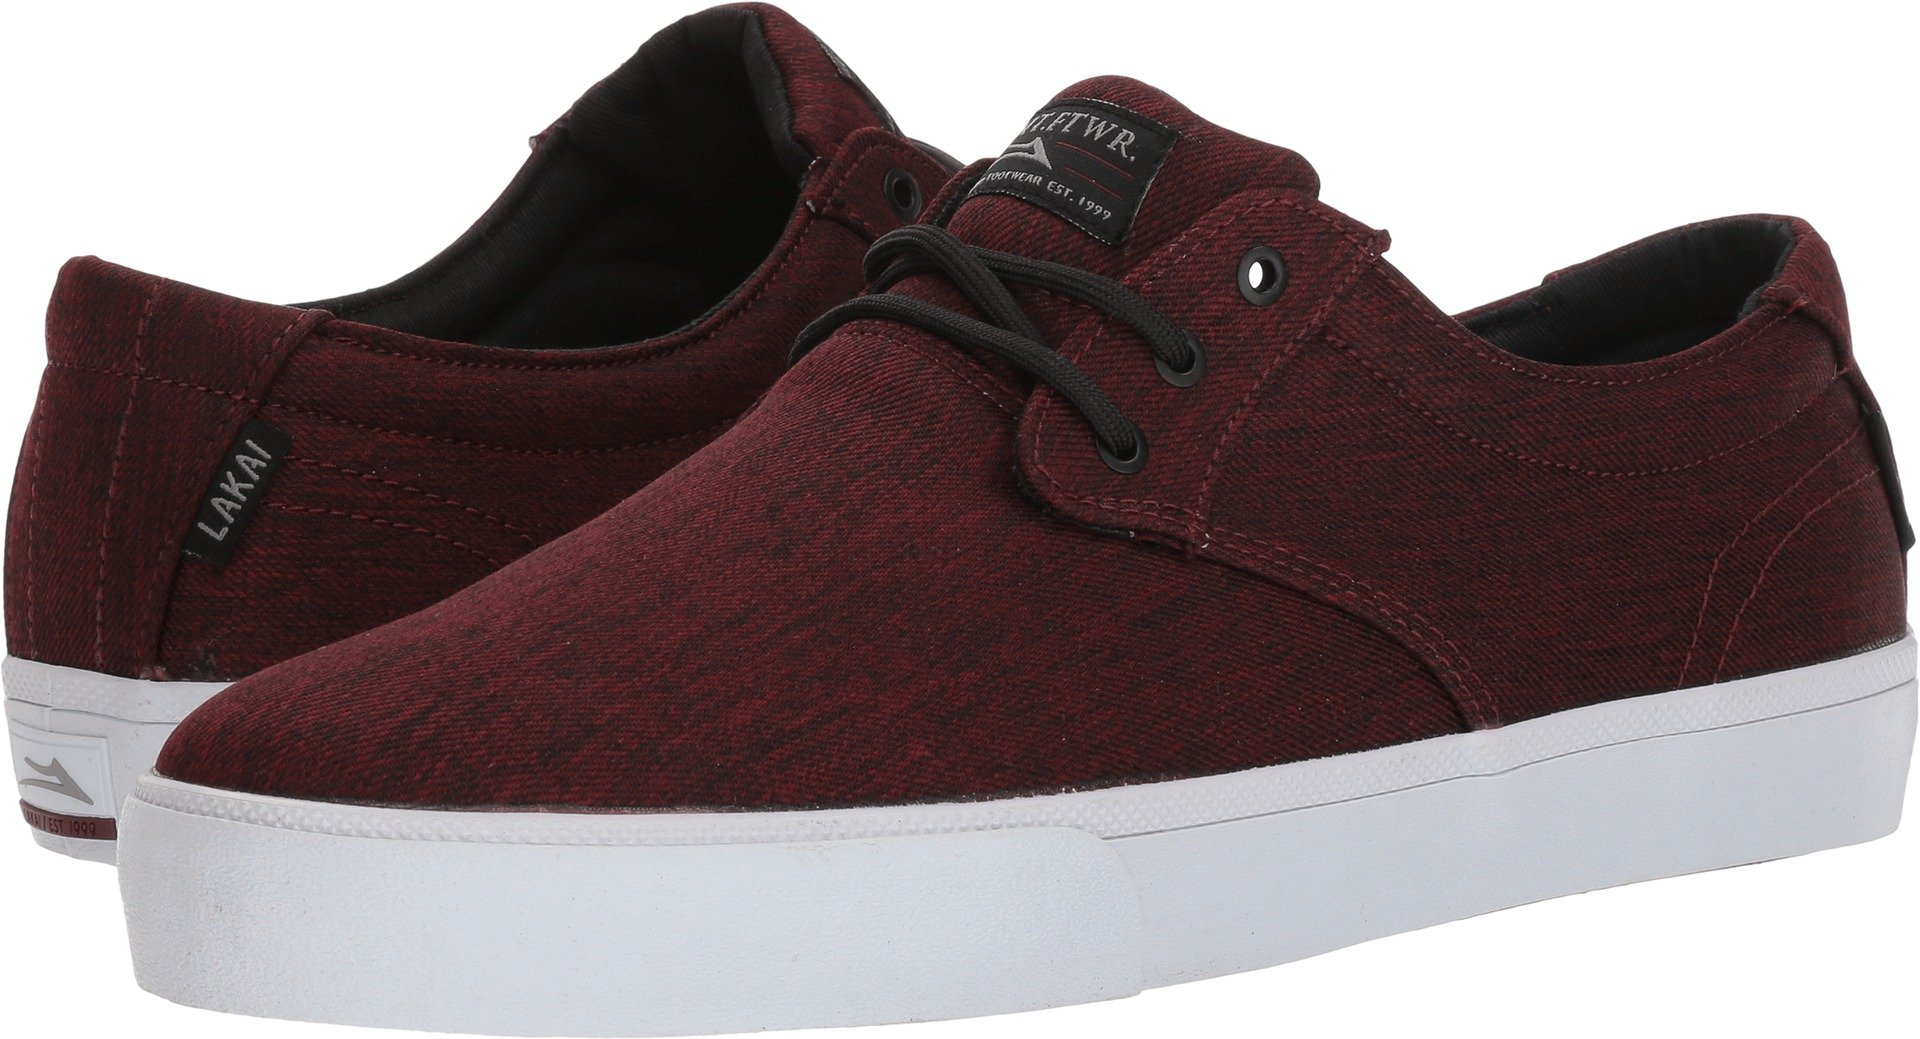 Lakai Daly, Burgundy Textile, 12 Medium US